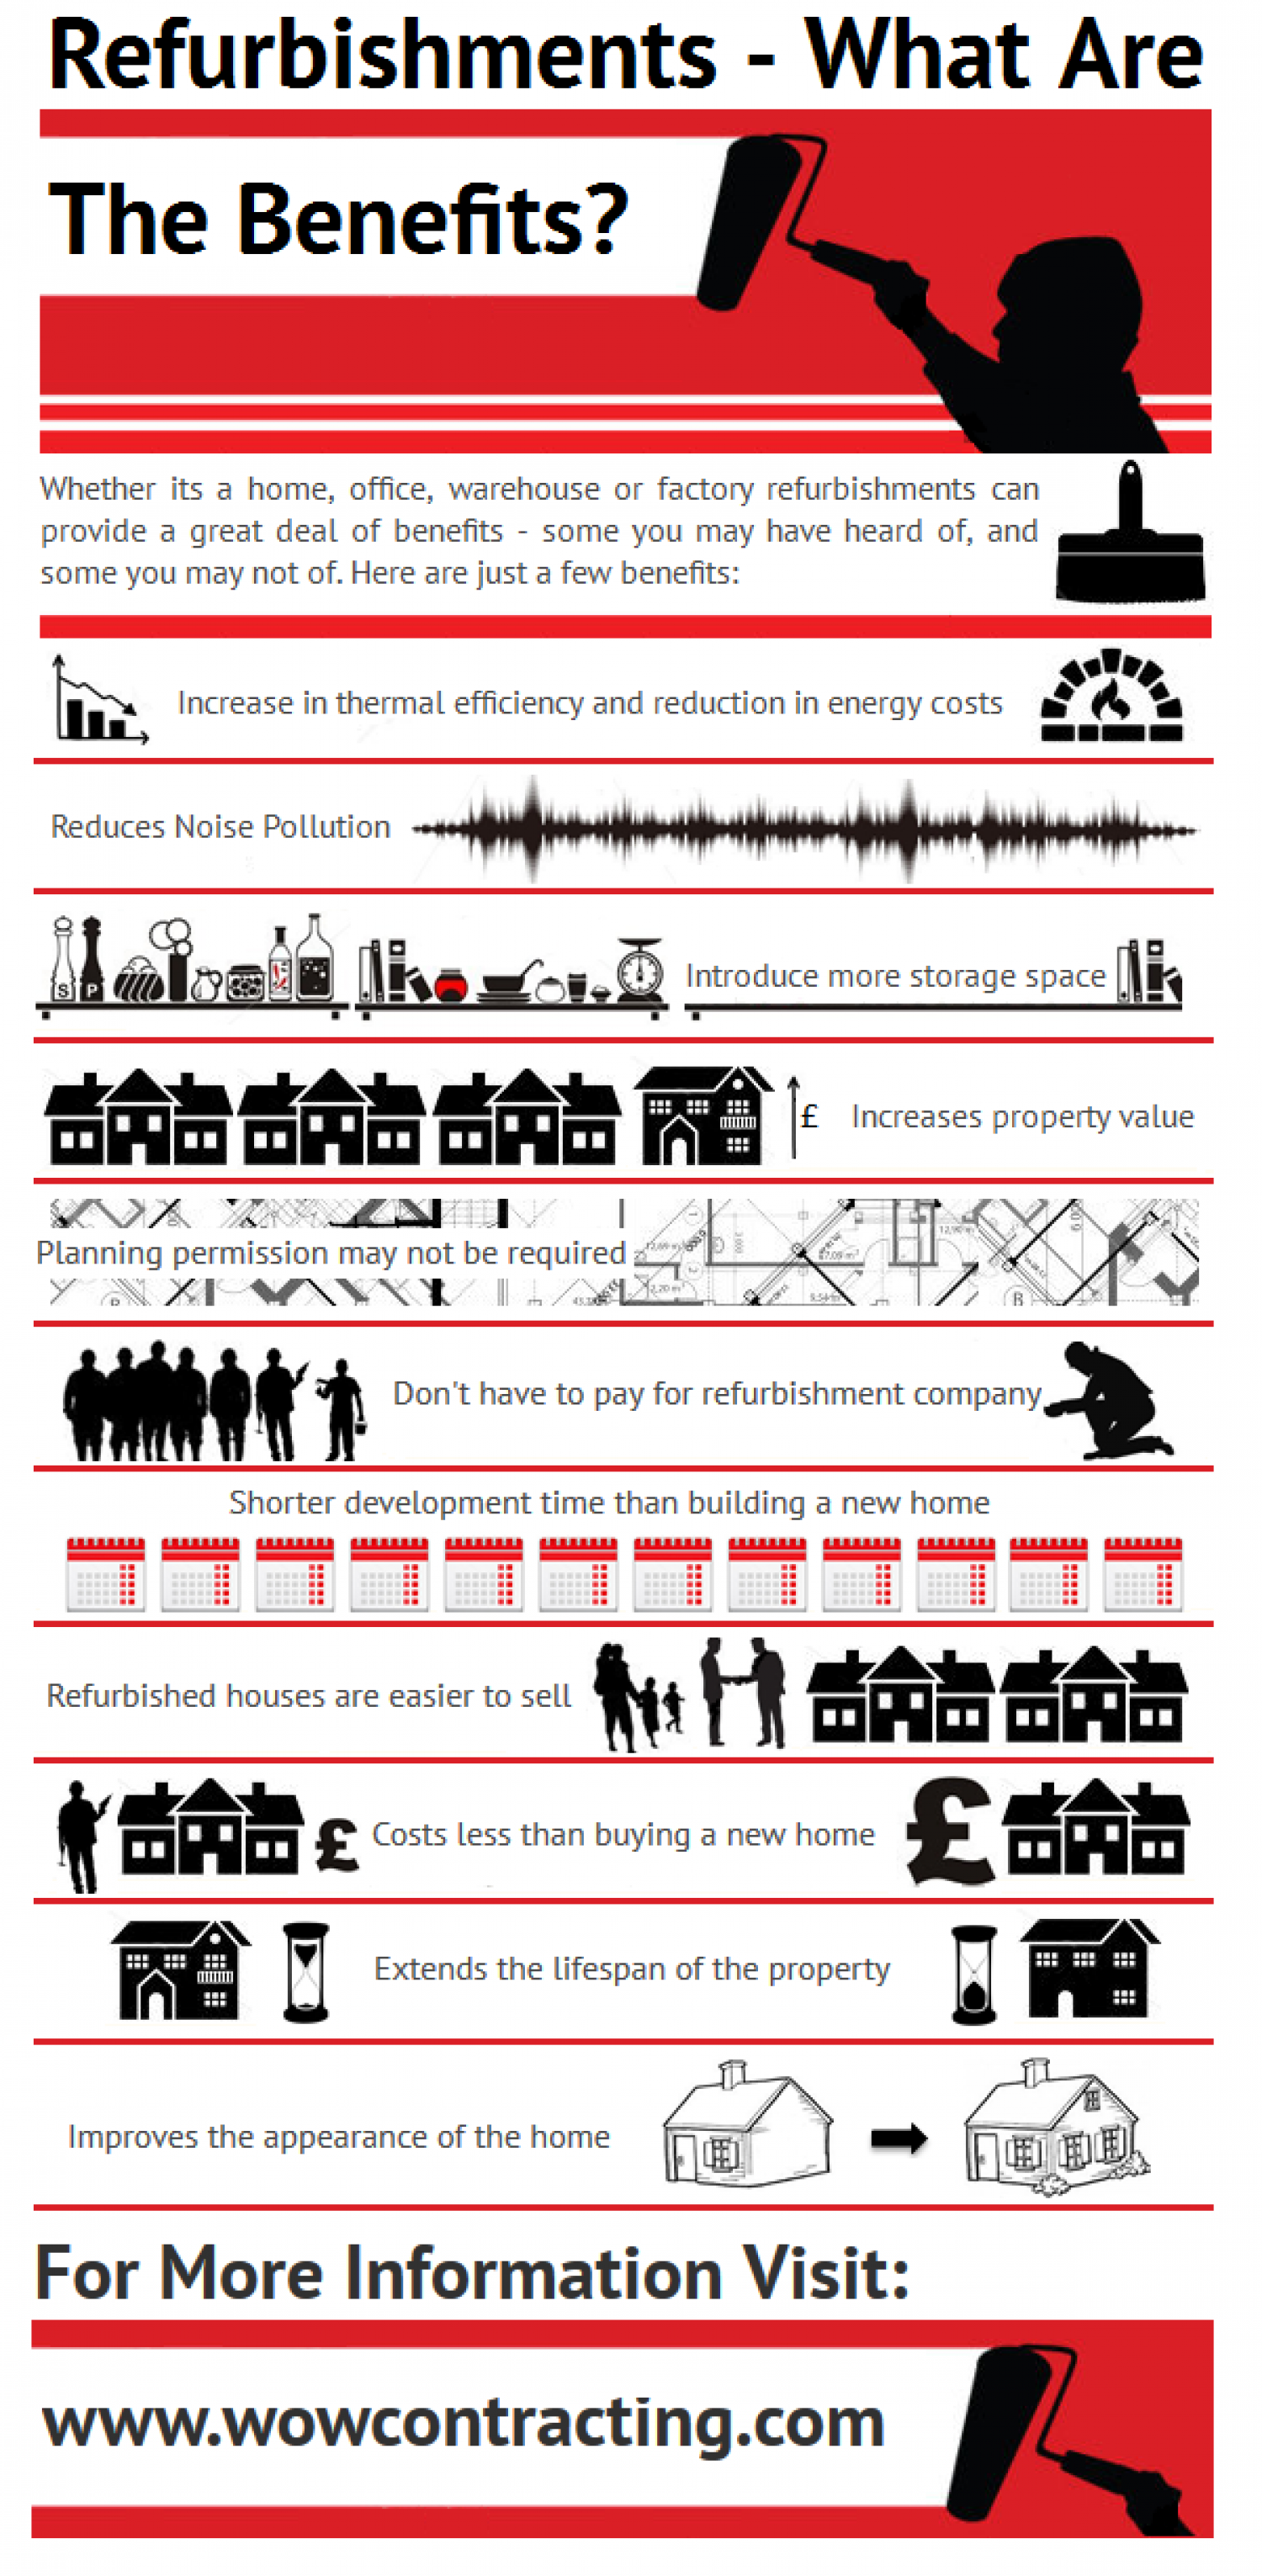 Refurbishments - What are the benefits? Infographic